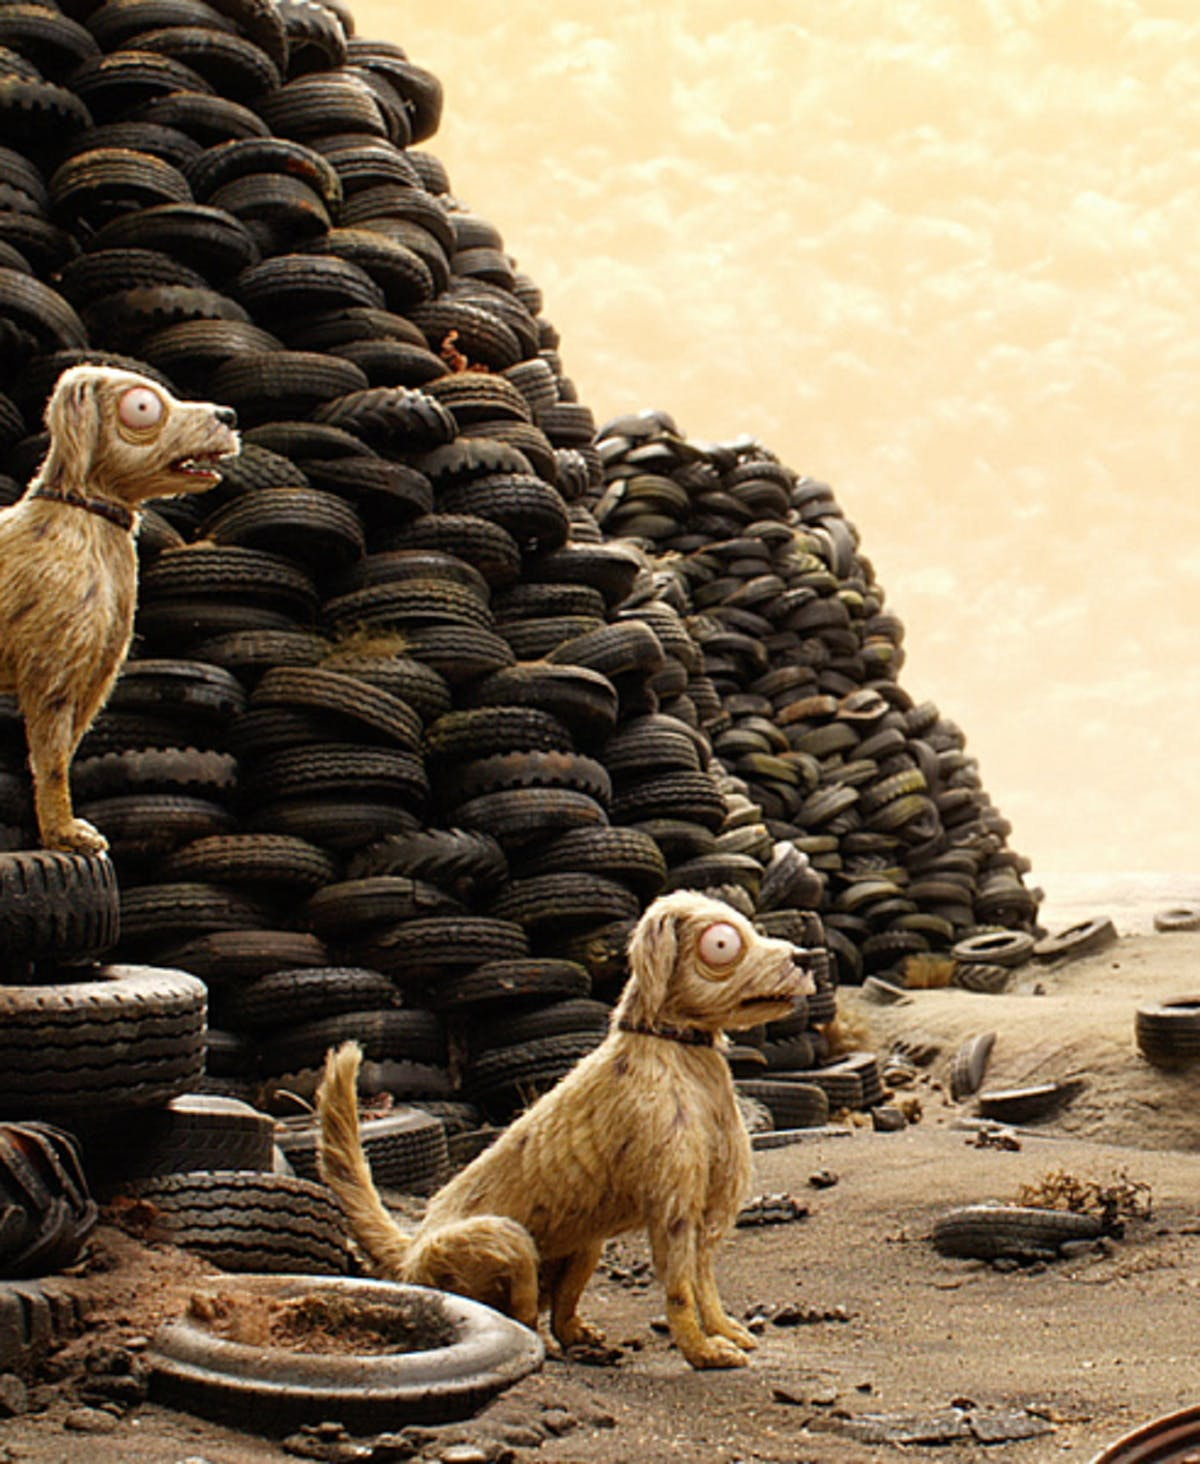 Isle Of Dogs - Daily Scraps Wes Anderson thumbnail